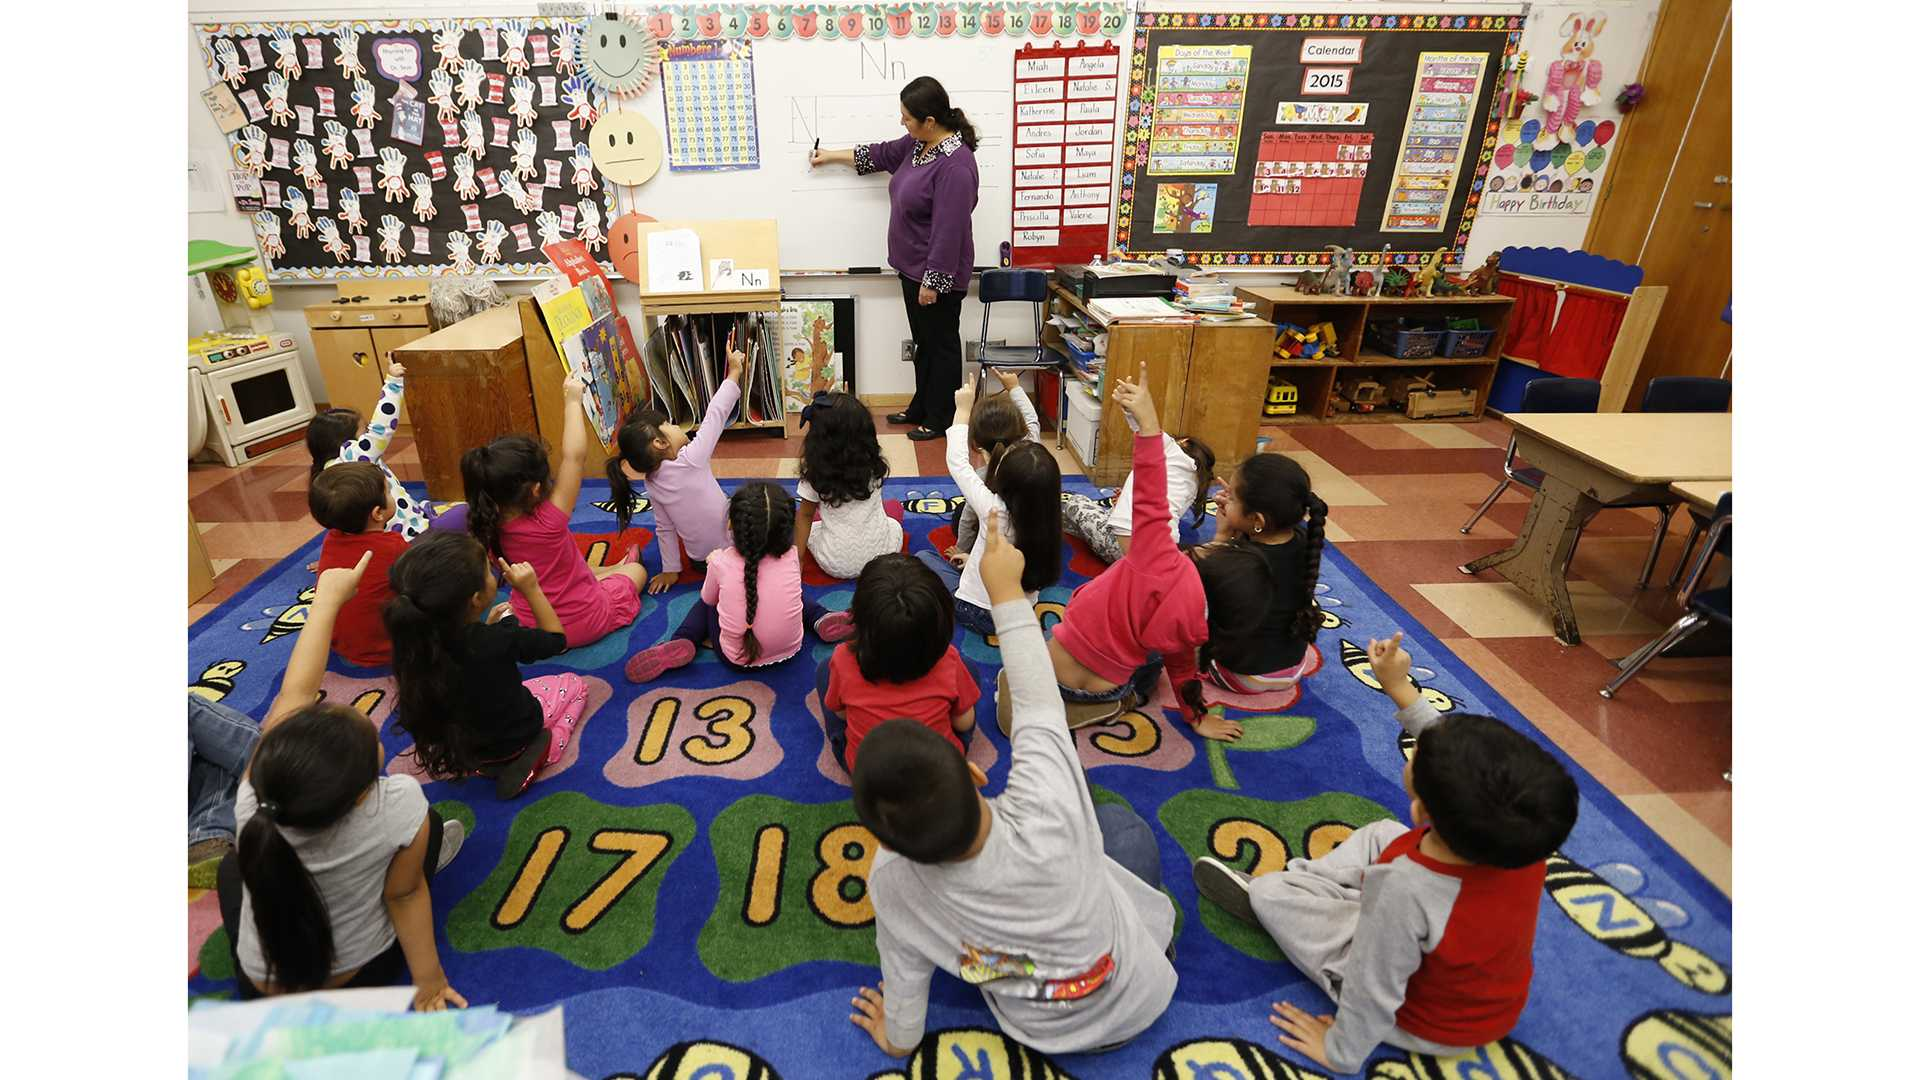 National data show careful investments in high-quality preschools and small class size in elementary schools can pay off. Above, pre-K students at Dorris Place Elementary School in Los Angeles on May 12, 2015. (Al Seib/Los Angeles Times/TNS)